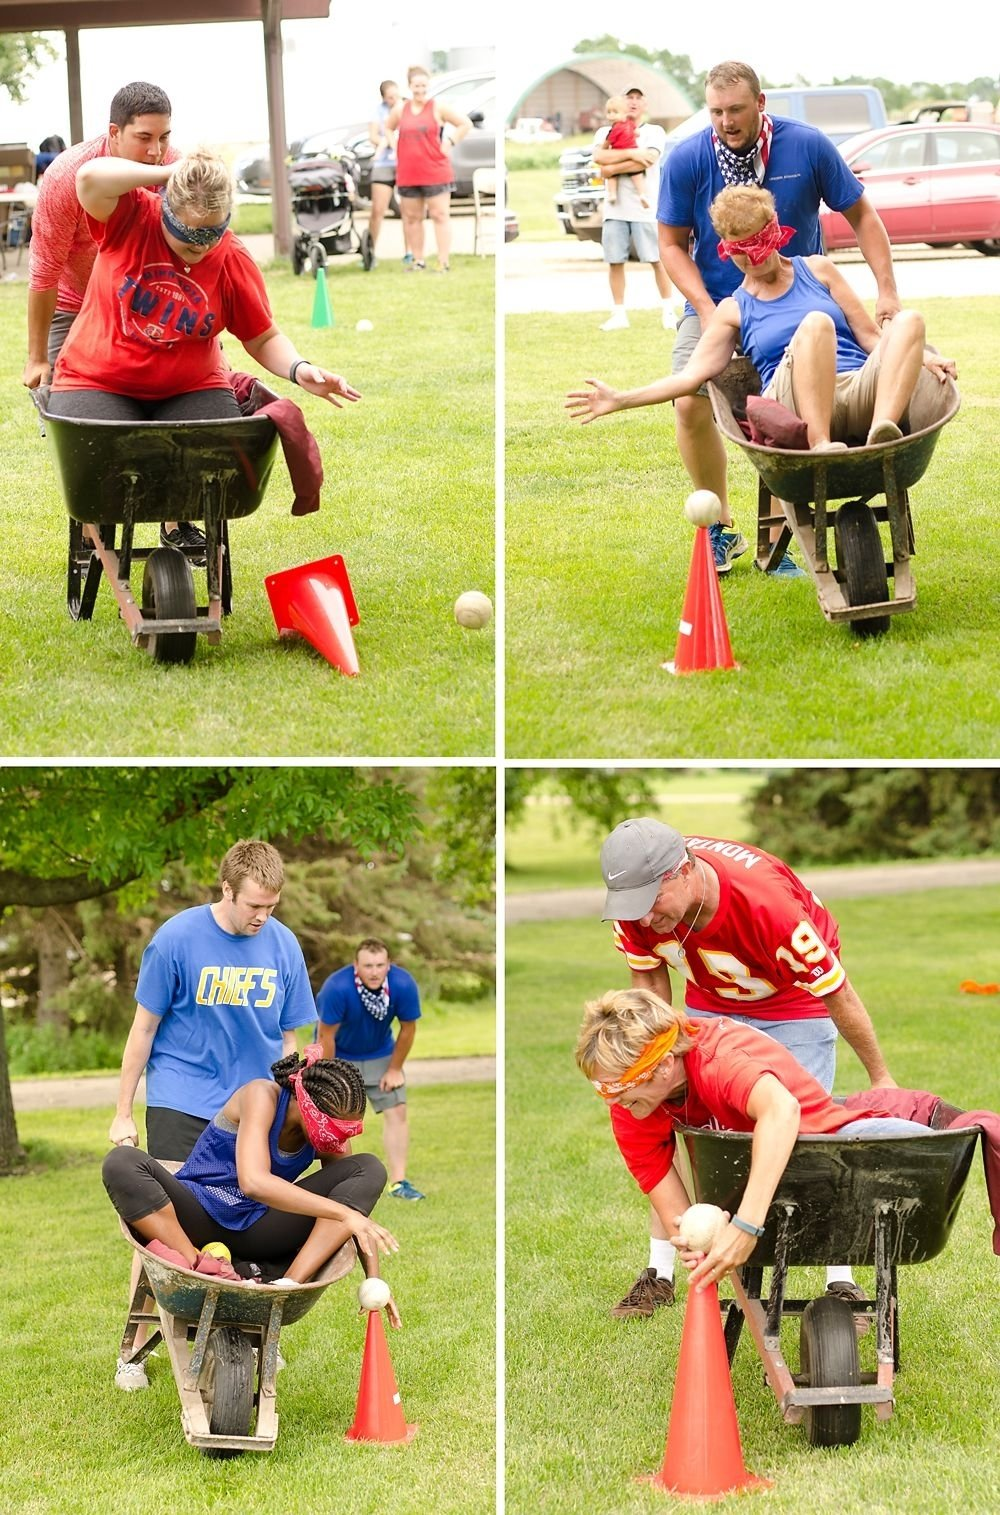 10 Awesome Relay Race Ideas For Adults adults and kids compete in a variety of backyard games including 1 2020